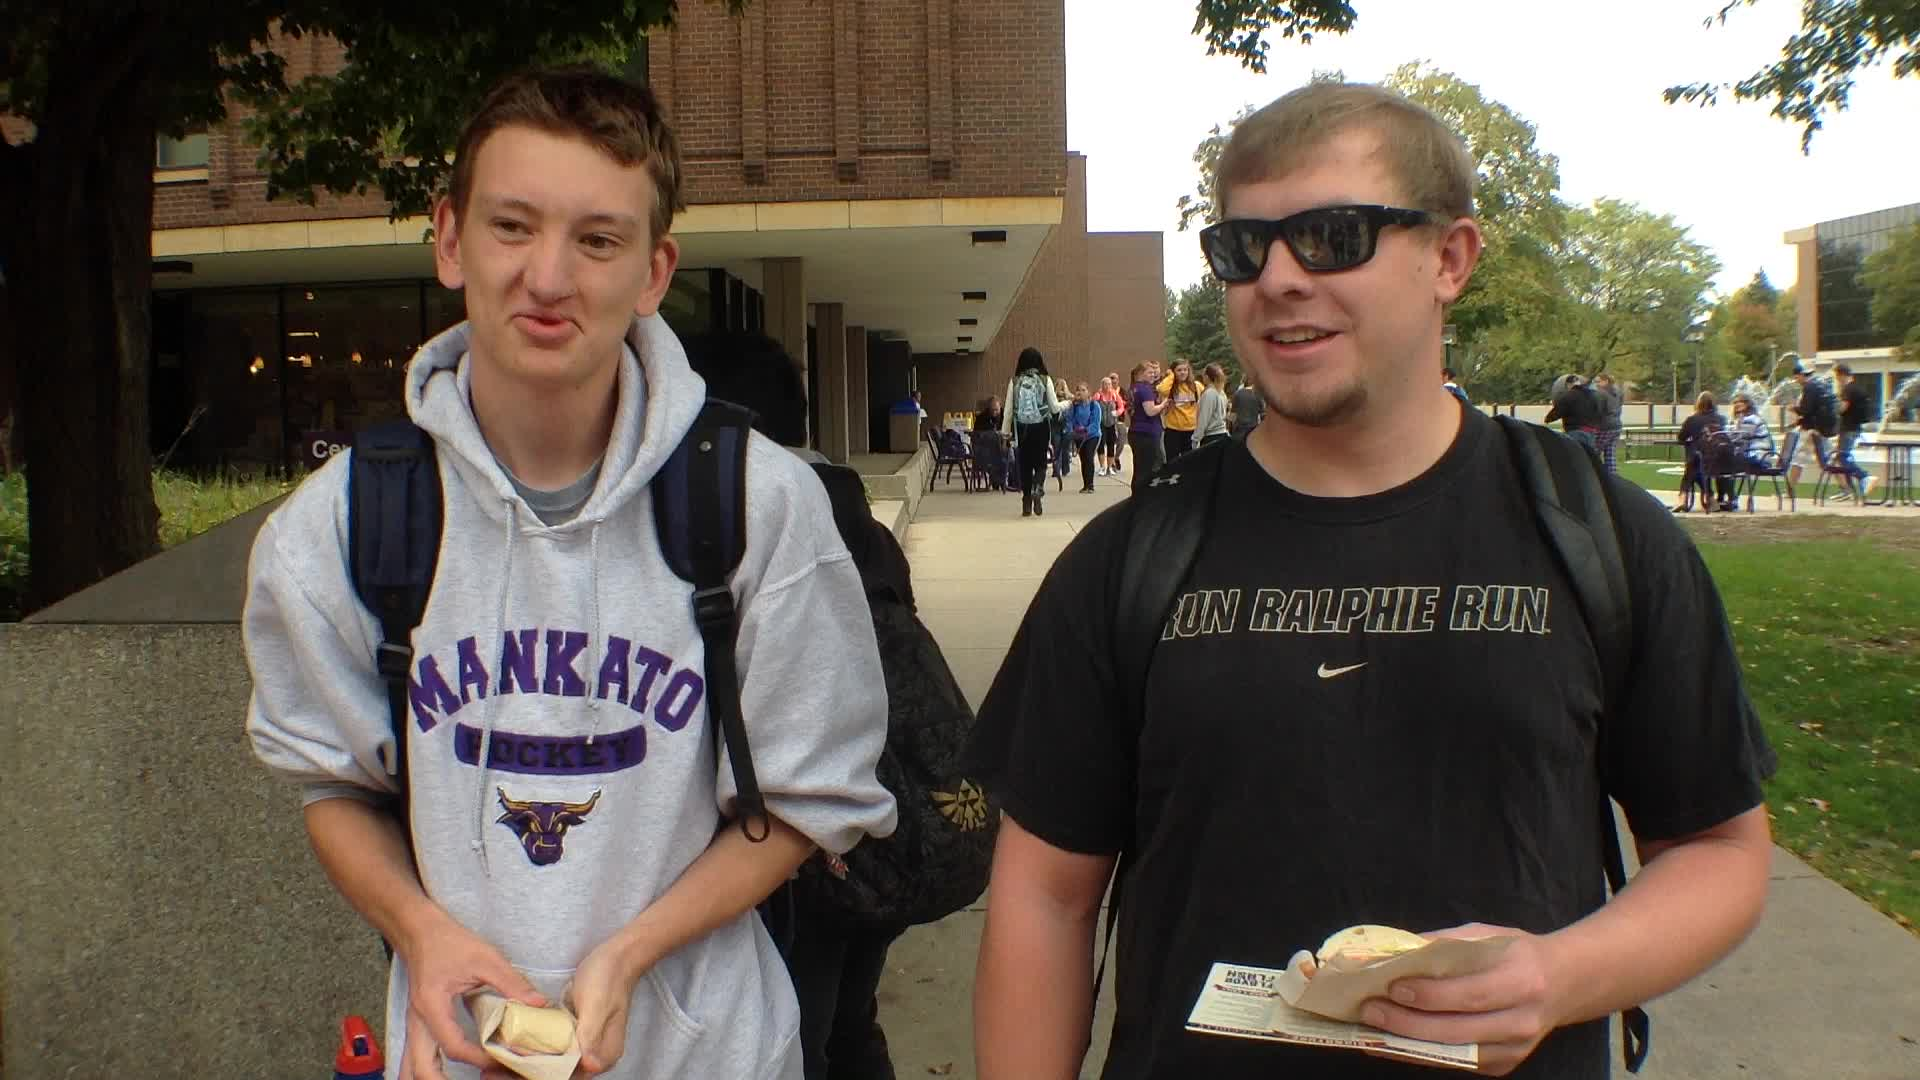 Bayien Rifleman, Mankato, MN and Mark Krinke, Mankato, MN - Homecoming 2015 at Minnesota State University, Mankato.